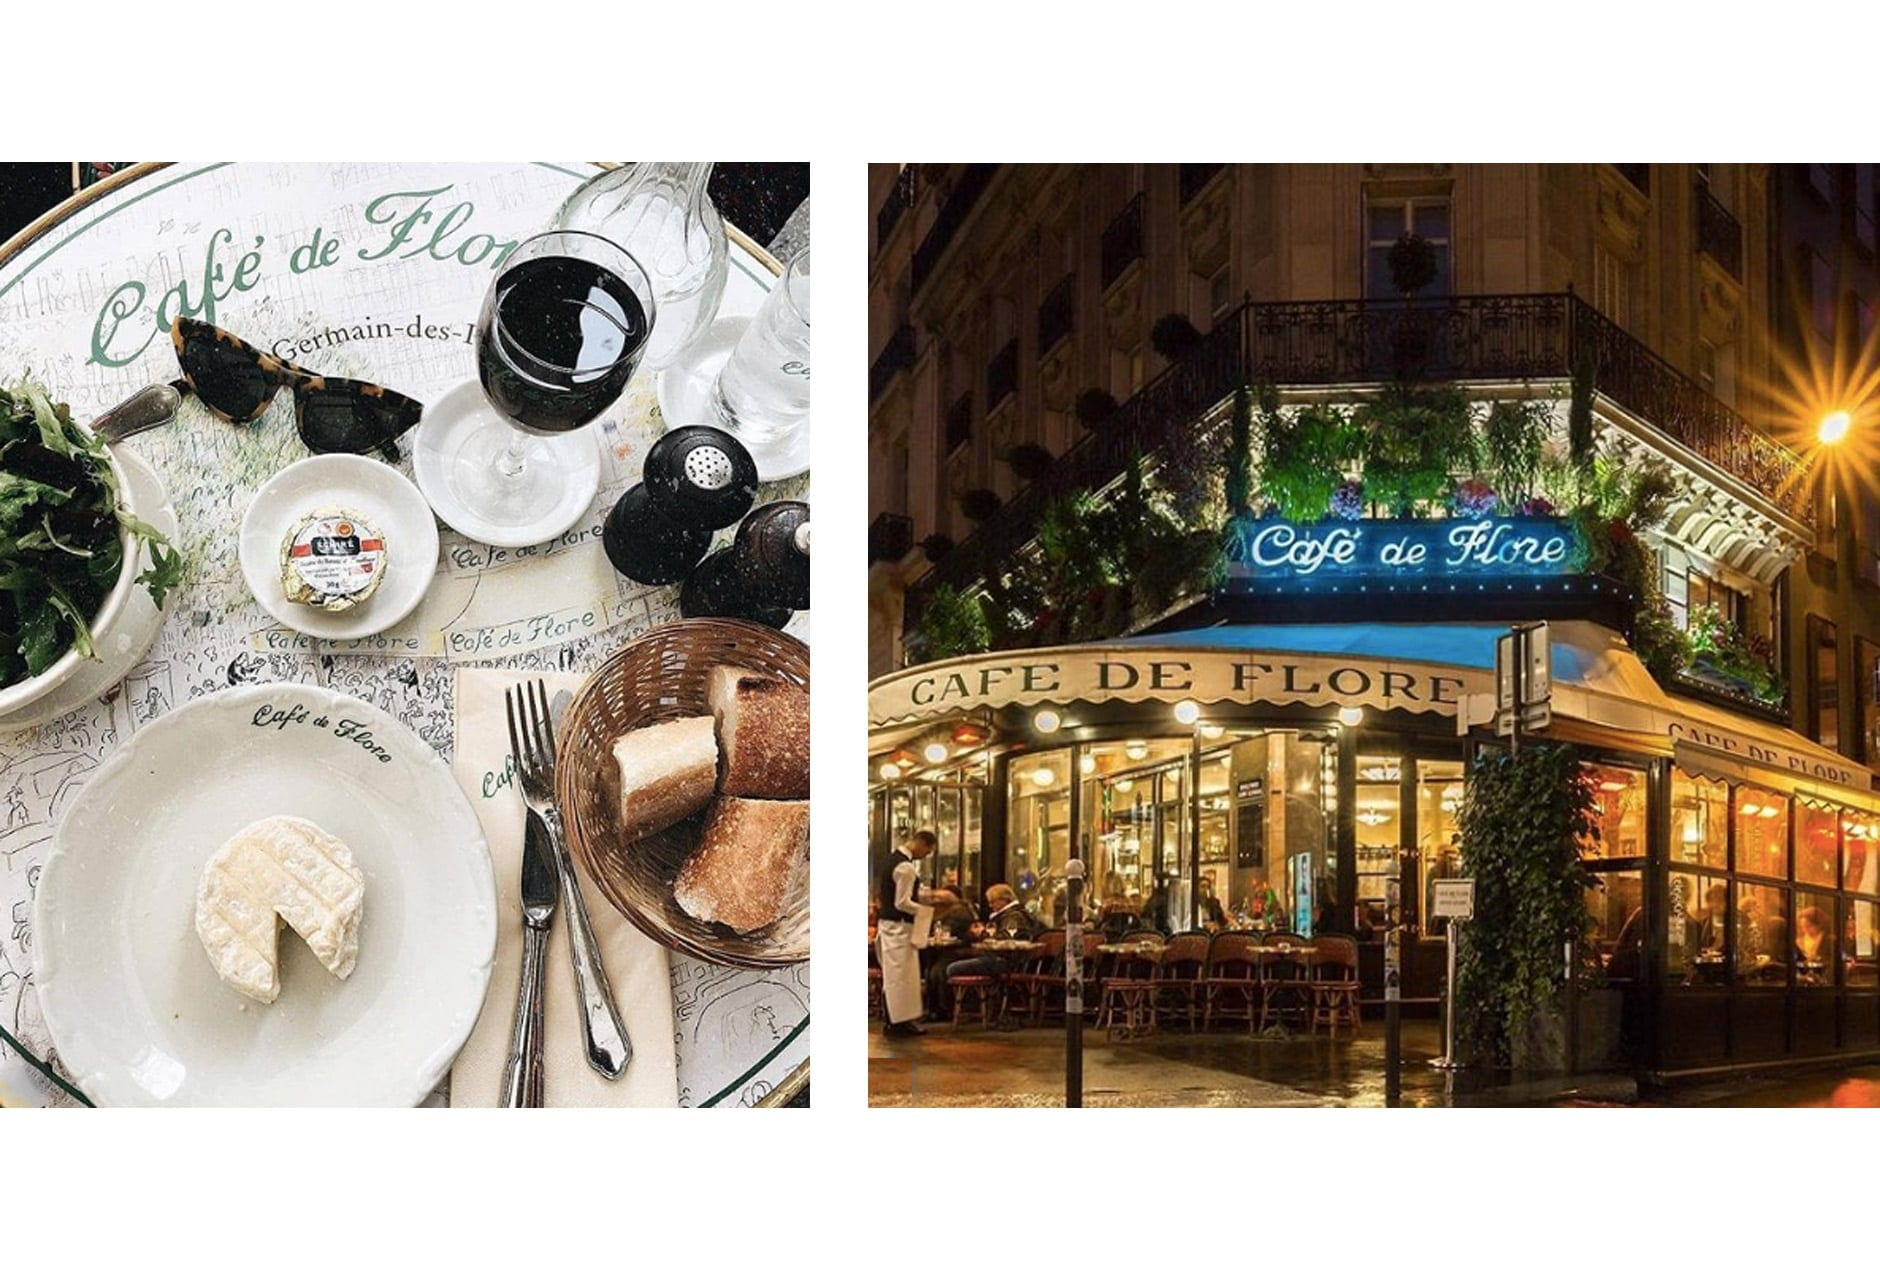 PARIS-WINE-BARS-CAFE-DE-FLORES-3-min